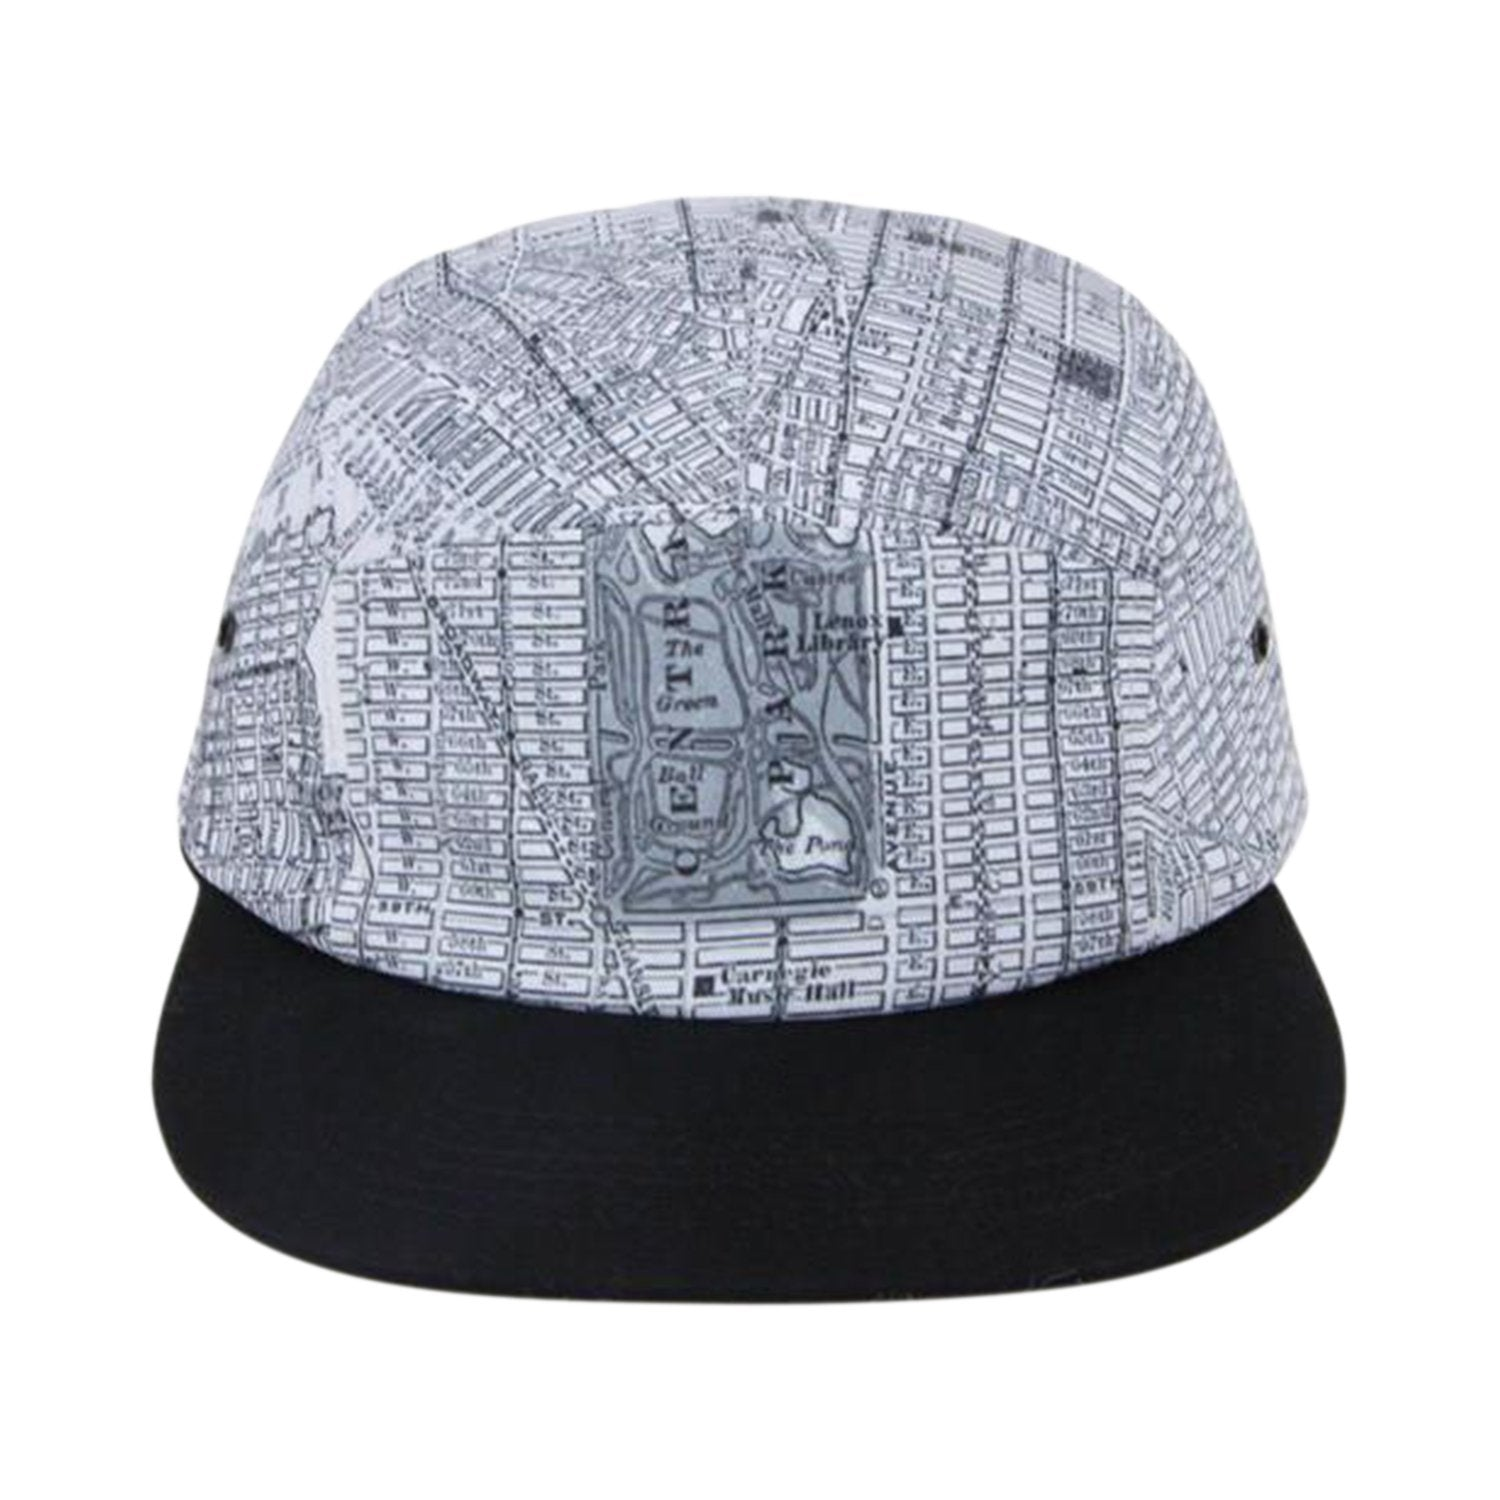 c4a92ba0ea1 New York City Hat - NYC Hat - Vintage Map Hat - Black And White